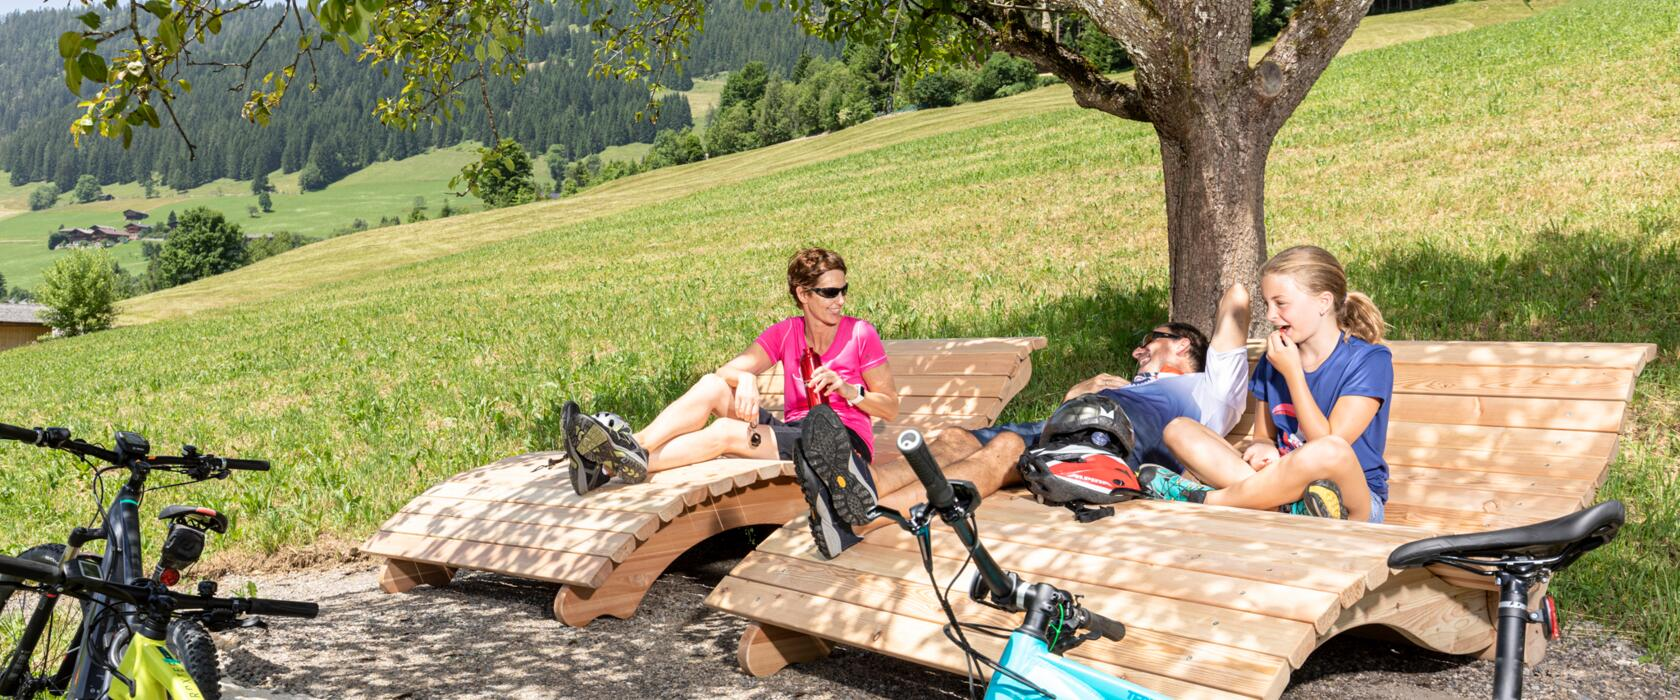 family excursion in active holiday in tyrol